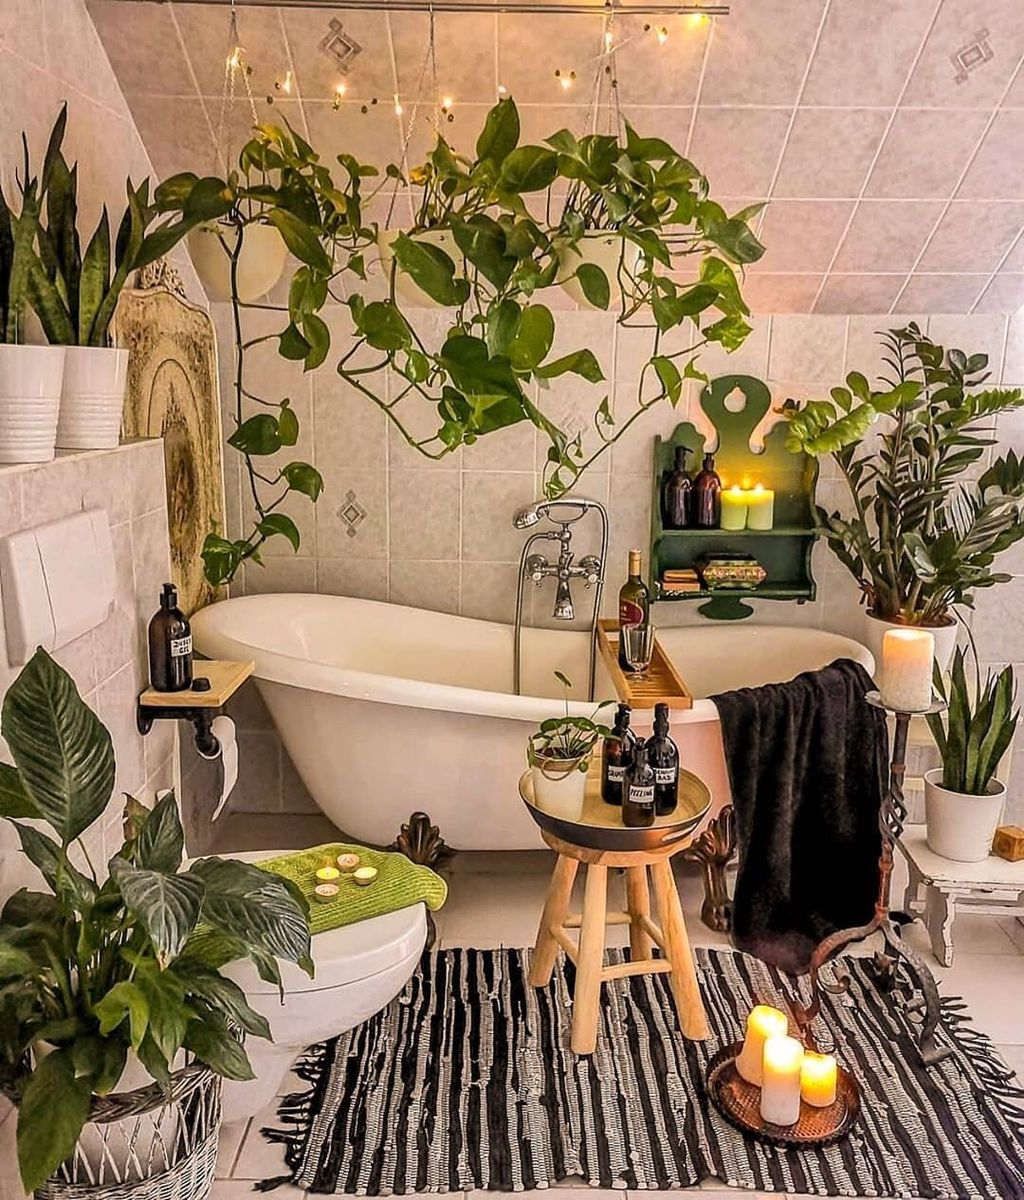 The Best Jungle Bathroom Decor Ideas To Get A Natural Impression 22